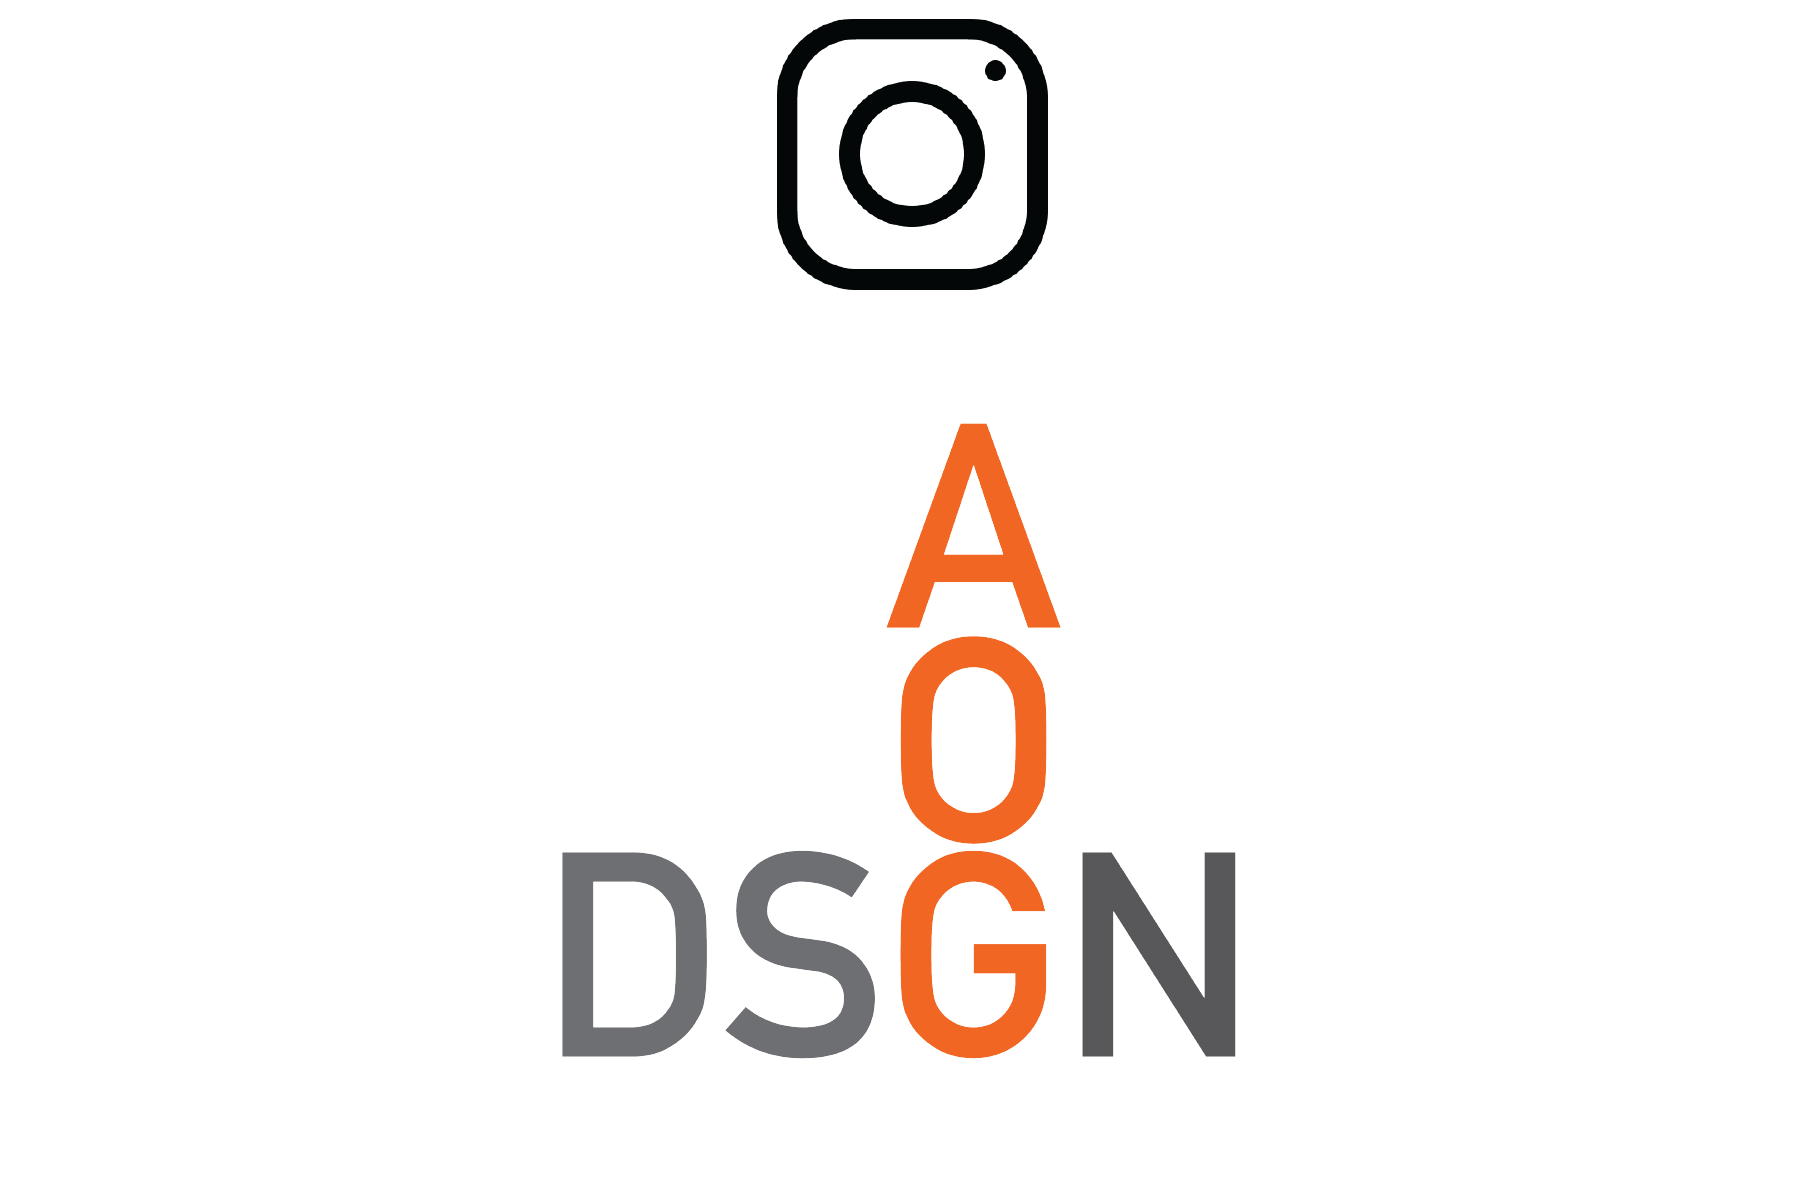 Image of AOG Design logo with redirect to instagram page when clicked